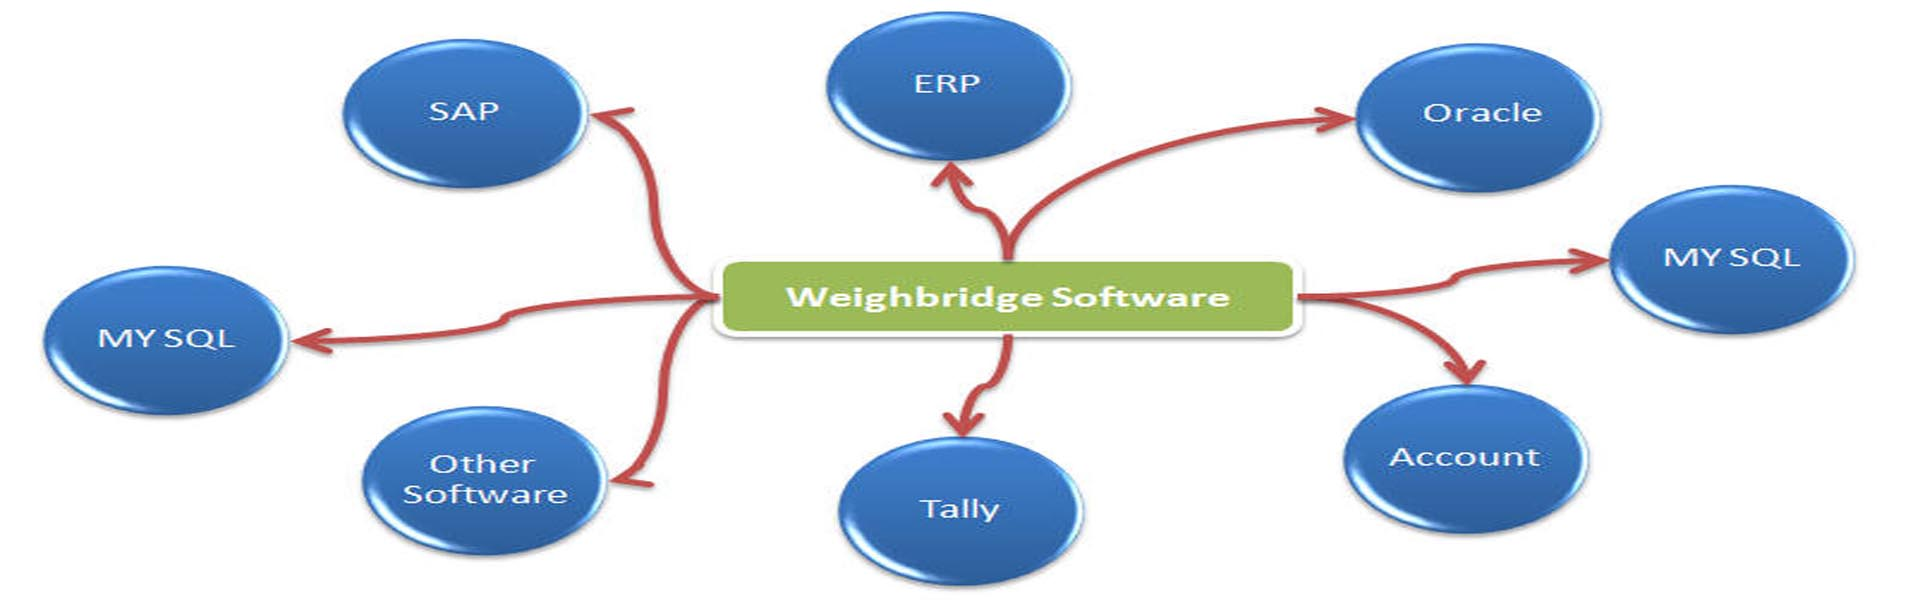 Weighbridge SAP Integration Software